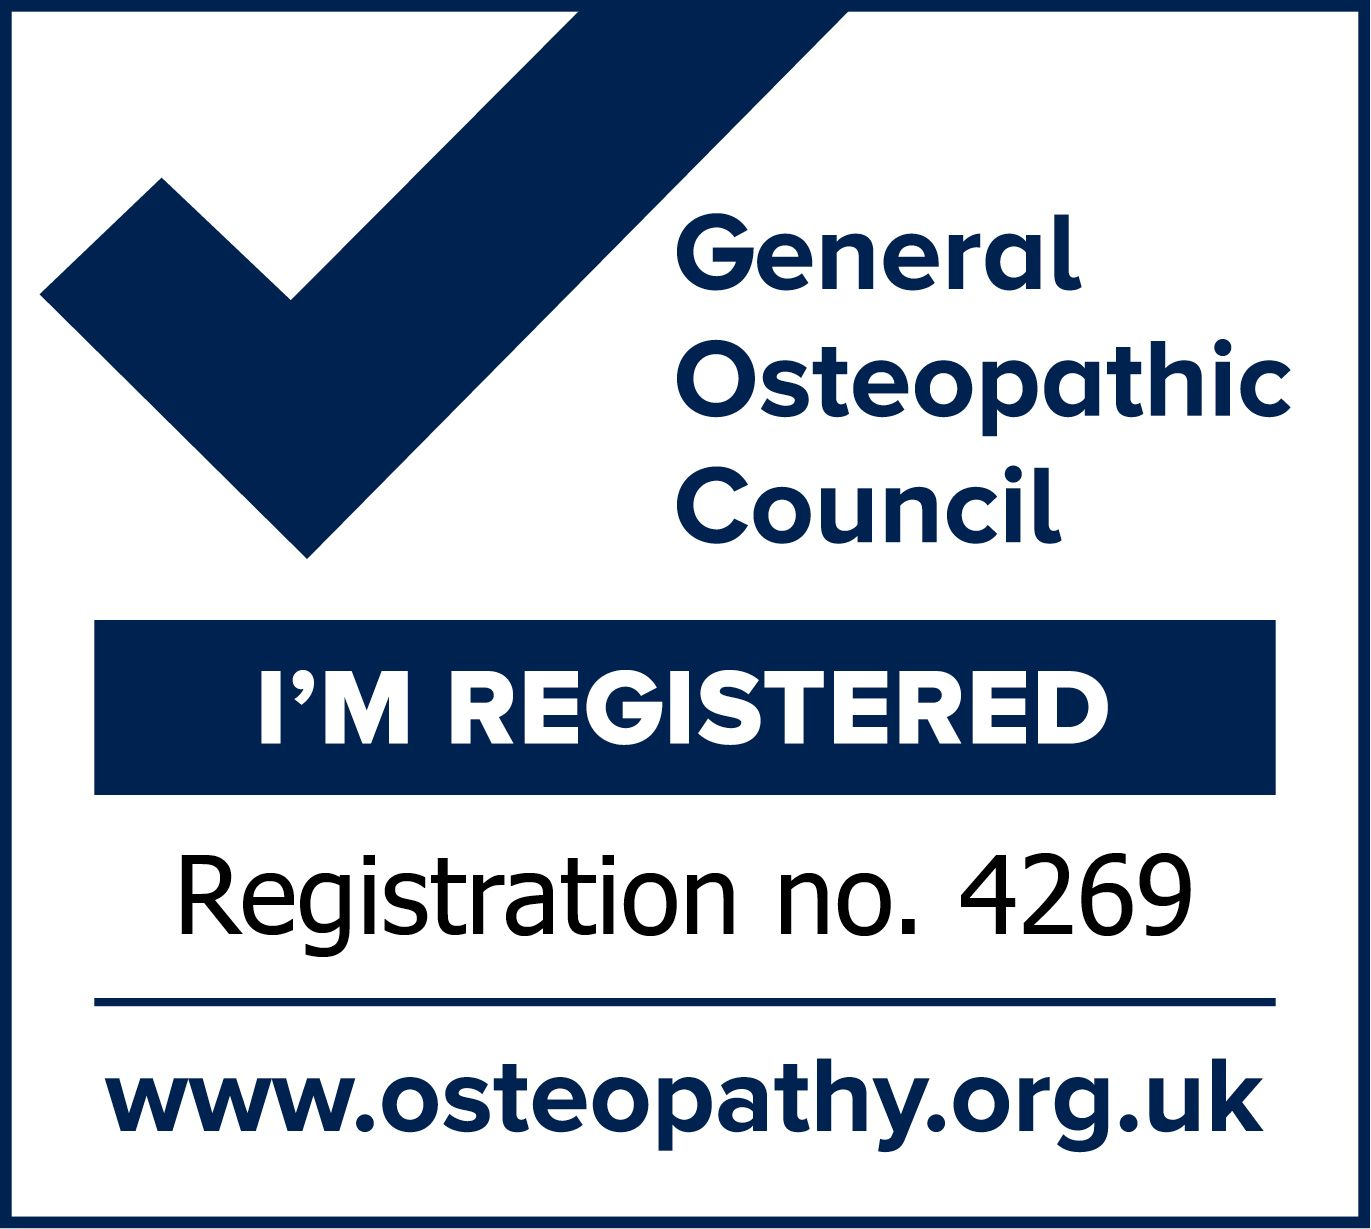 Darren Chandler, Osetopath is a registered member of the General Osteopathic Council